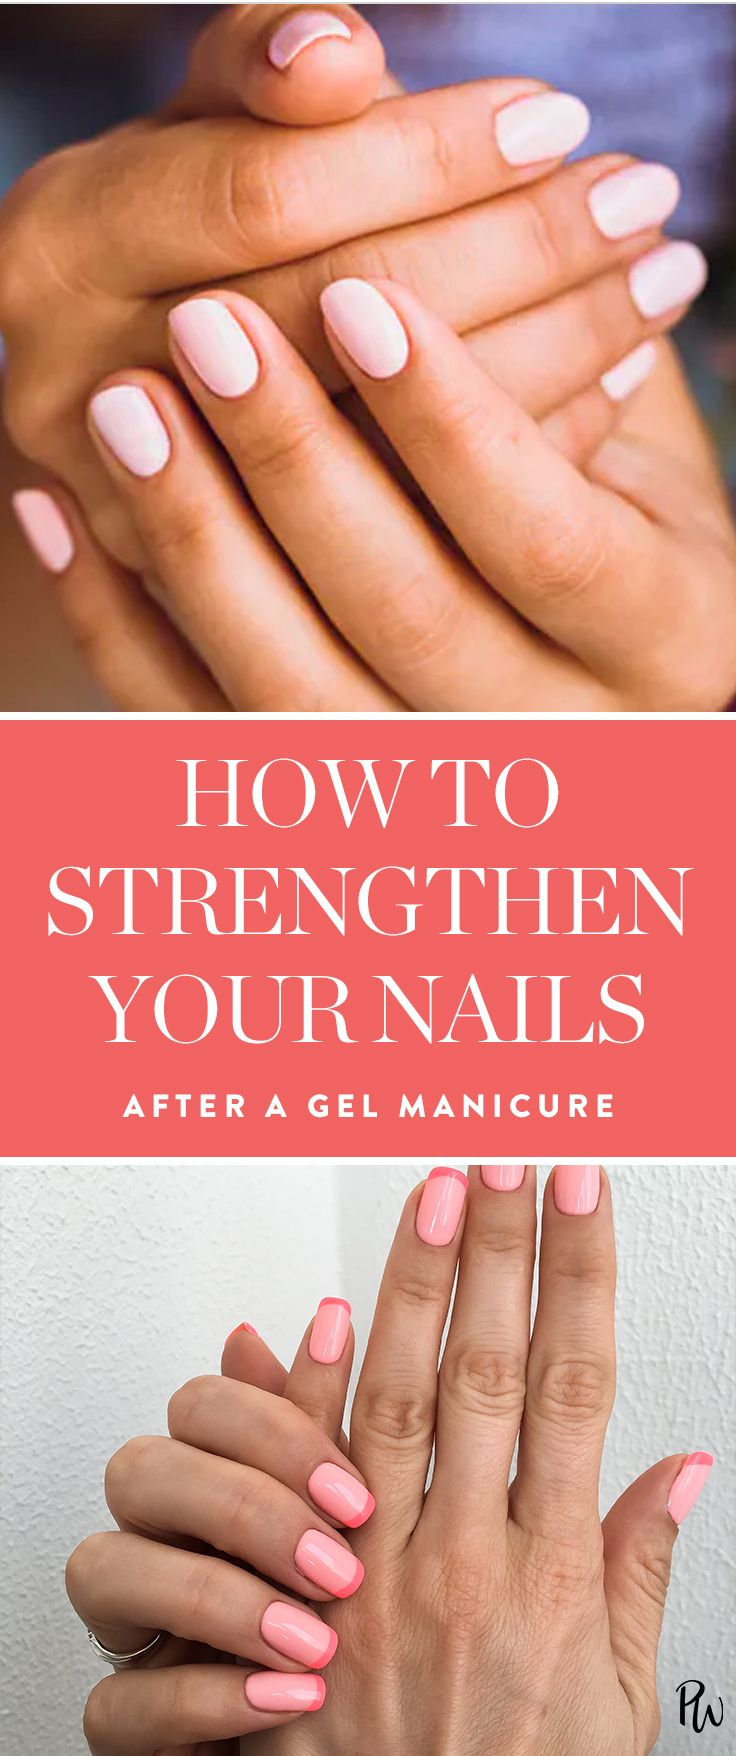 A StepbyStep Guide to Helping Your Nails Recover After a